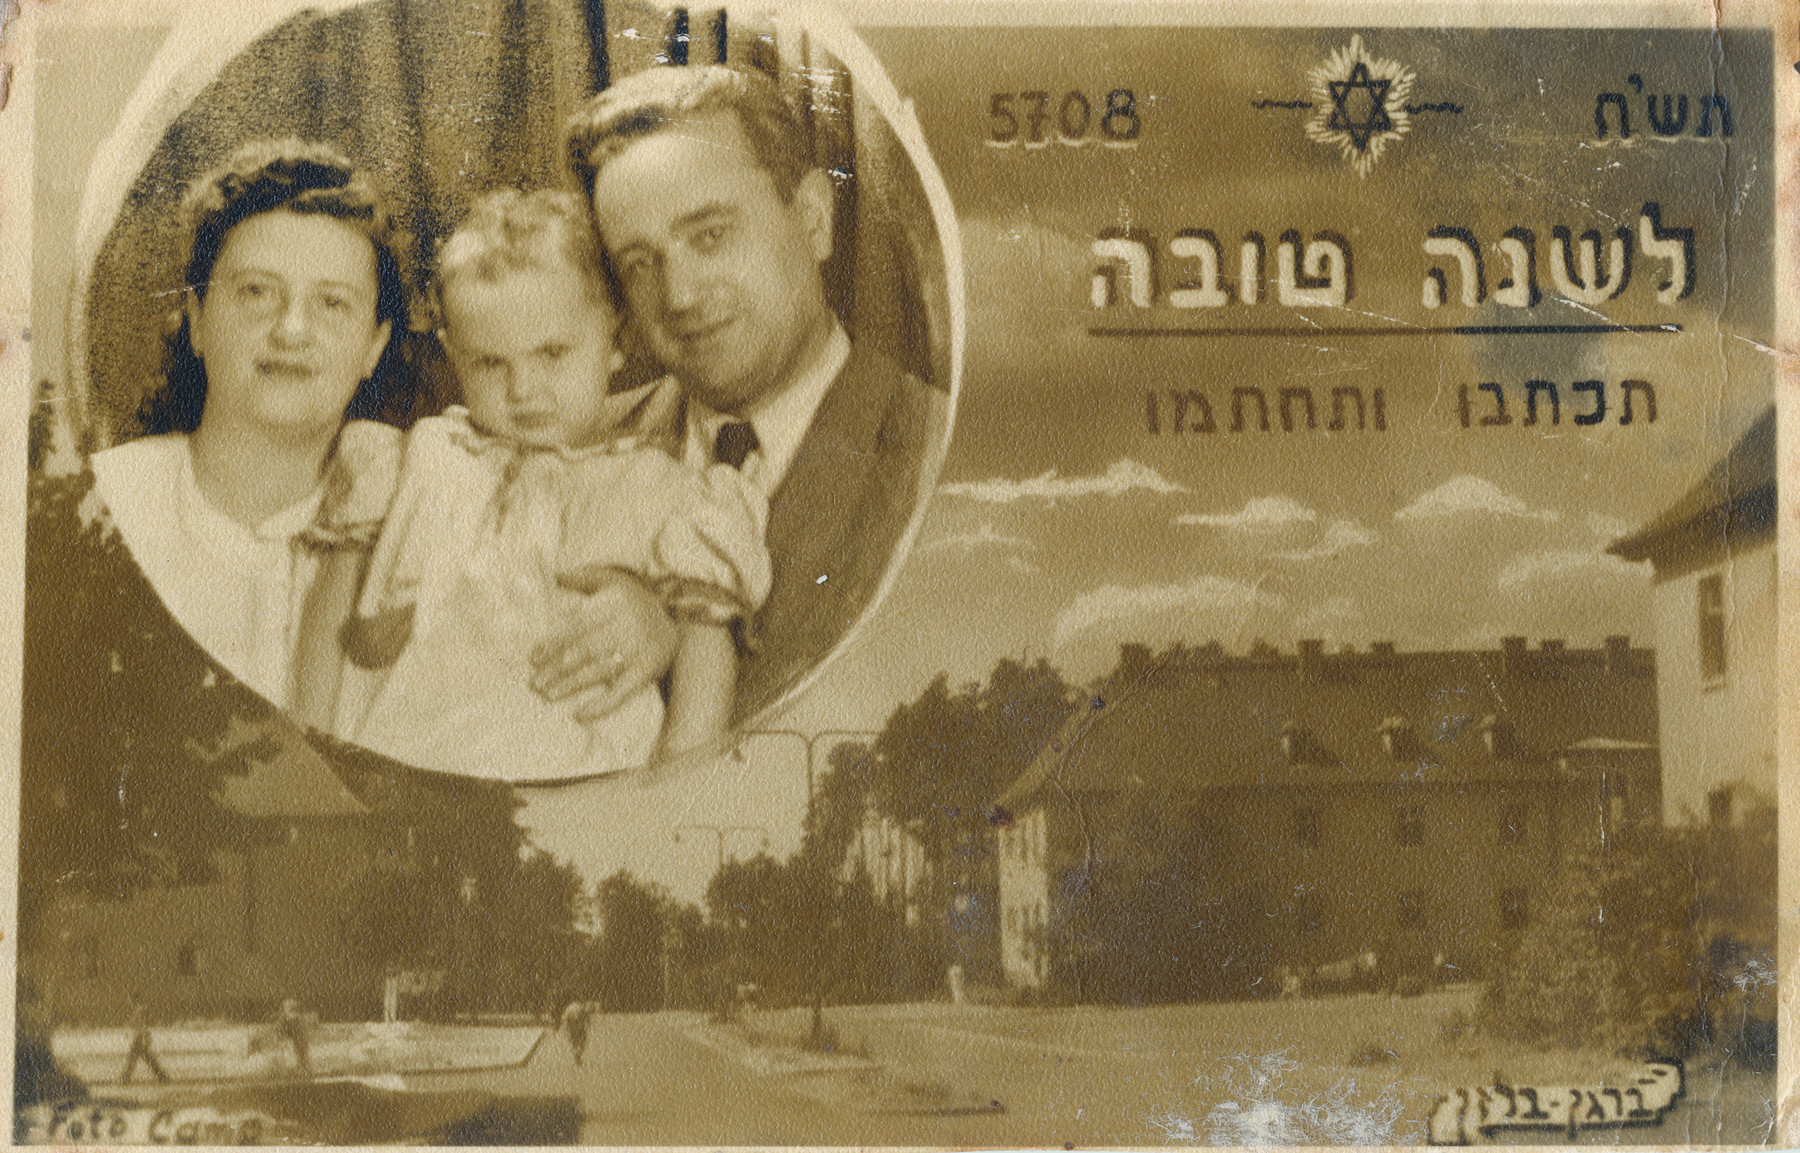 Jewish New Years card with an inset photograph of Hanna and her parents Moshe and Fruma-Hana Szklut.